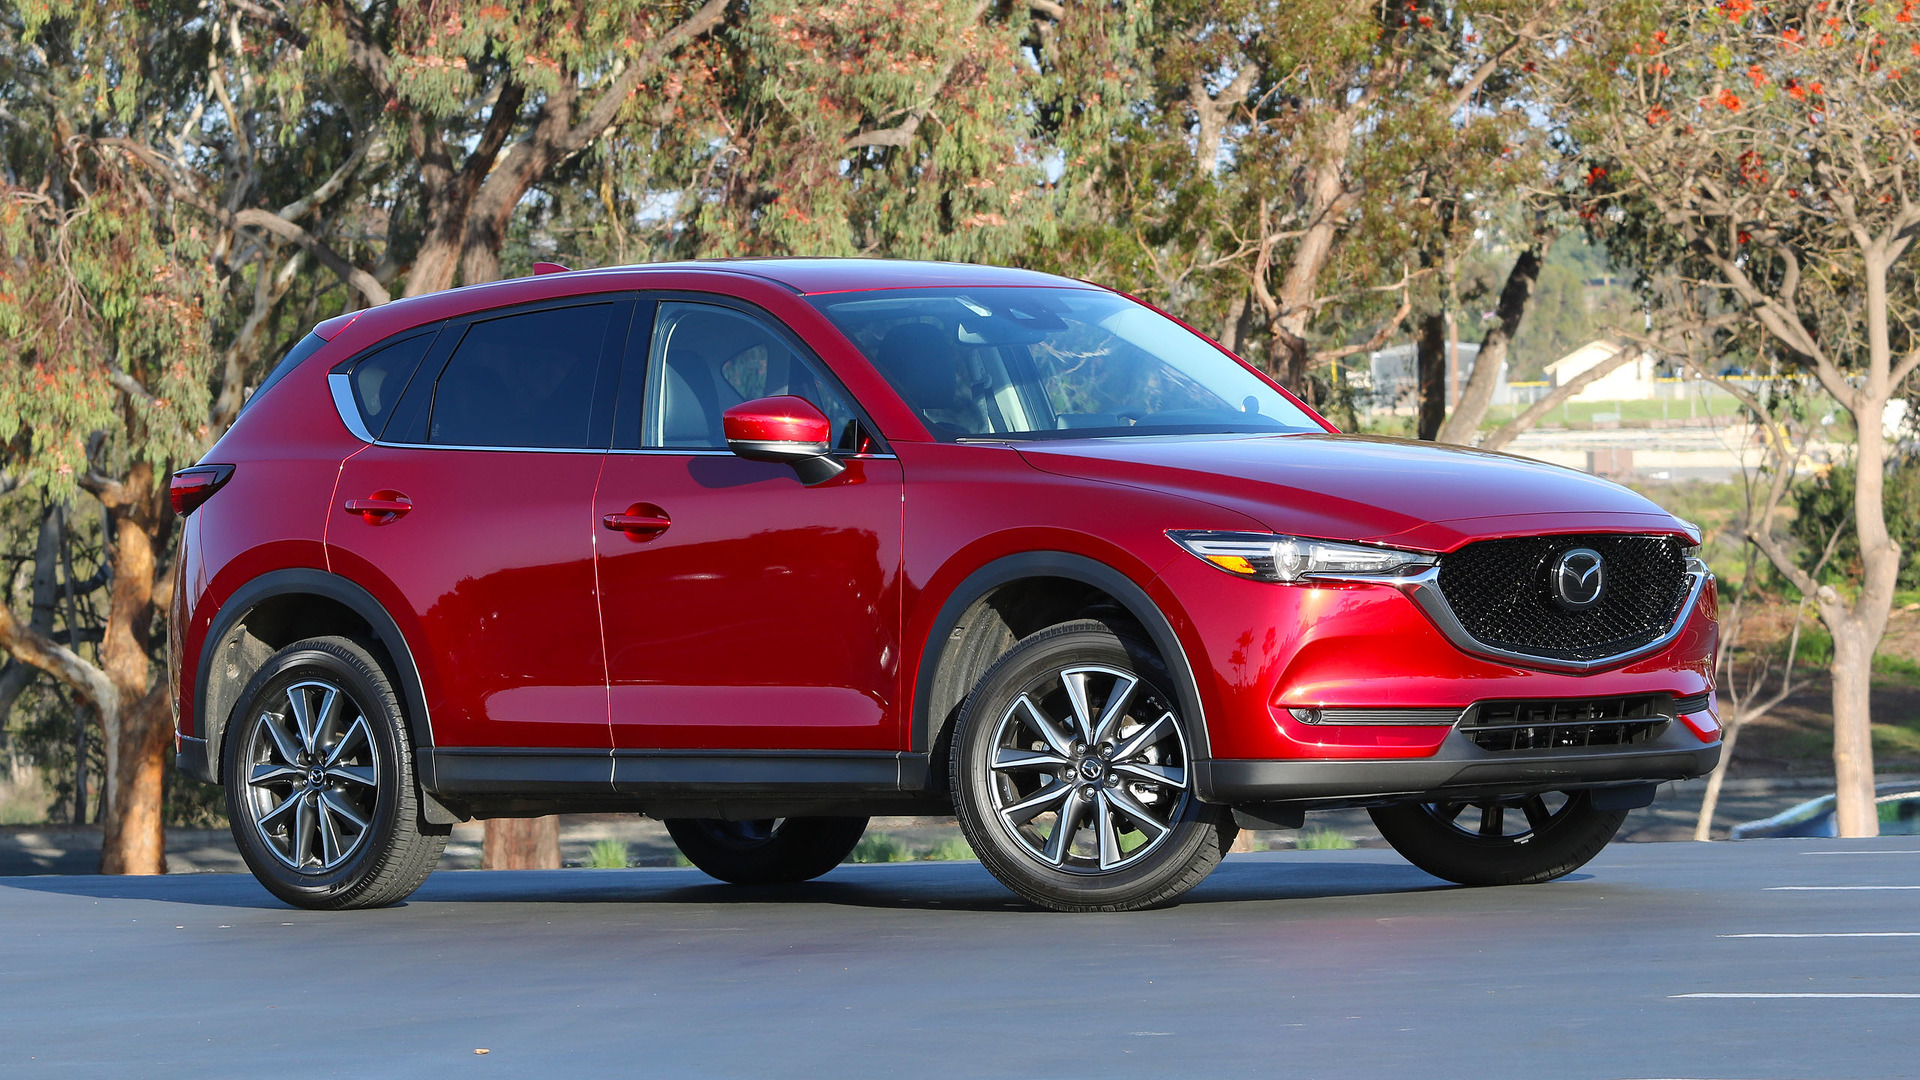 Mazda Crossover 2017 >> 2017 Mazda CX-5 First Drive: Now with fewer downsides